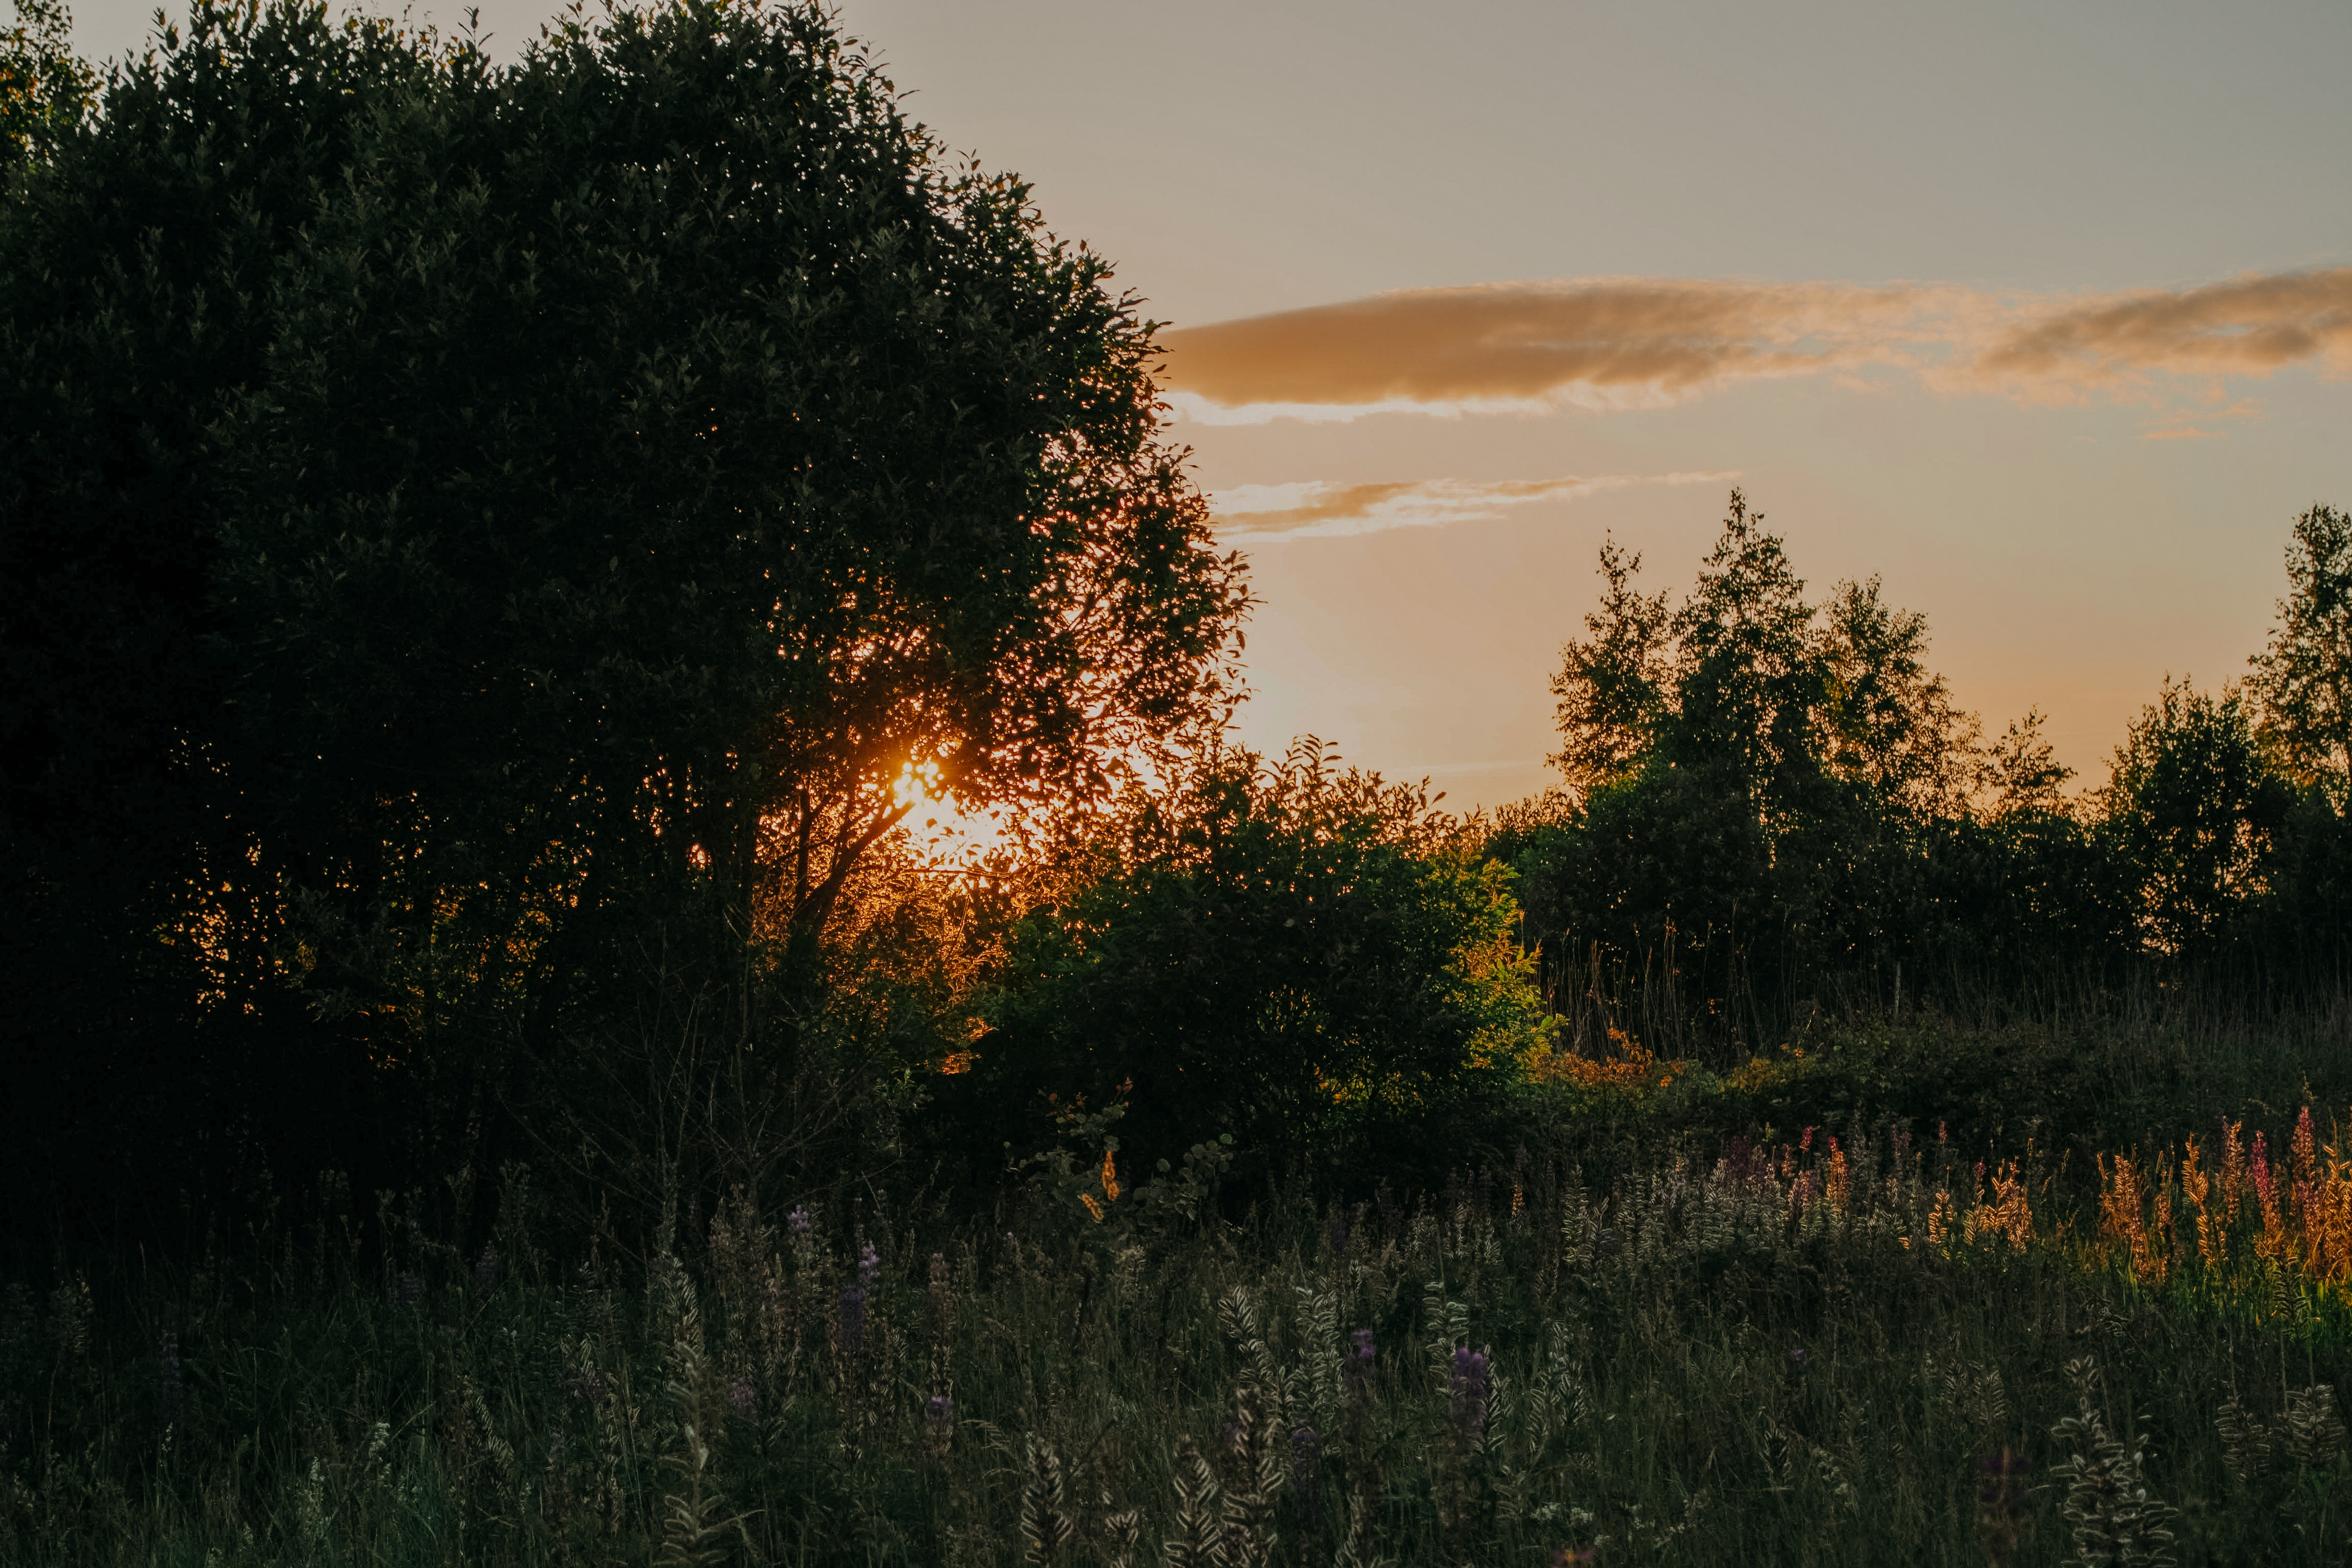 Grass field and trees during sunset photo